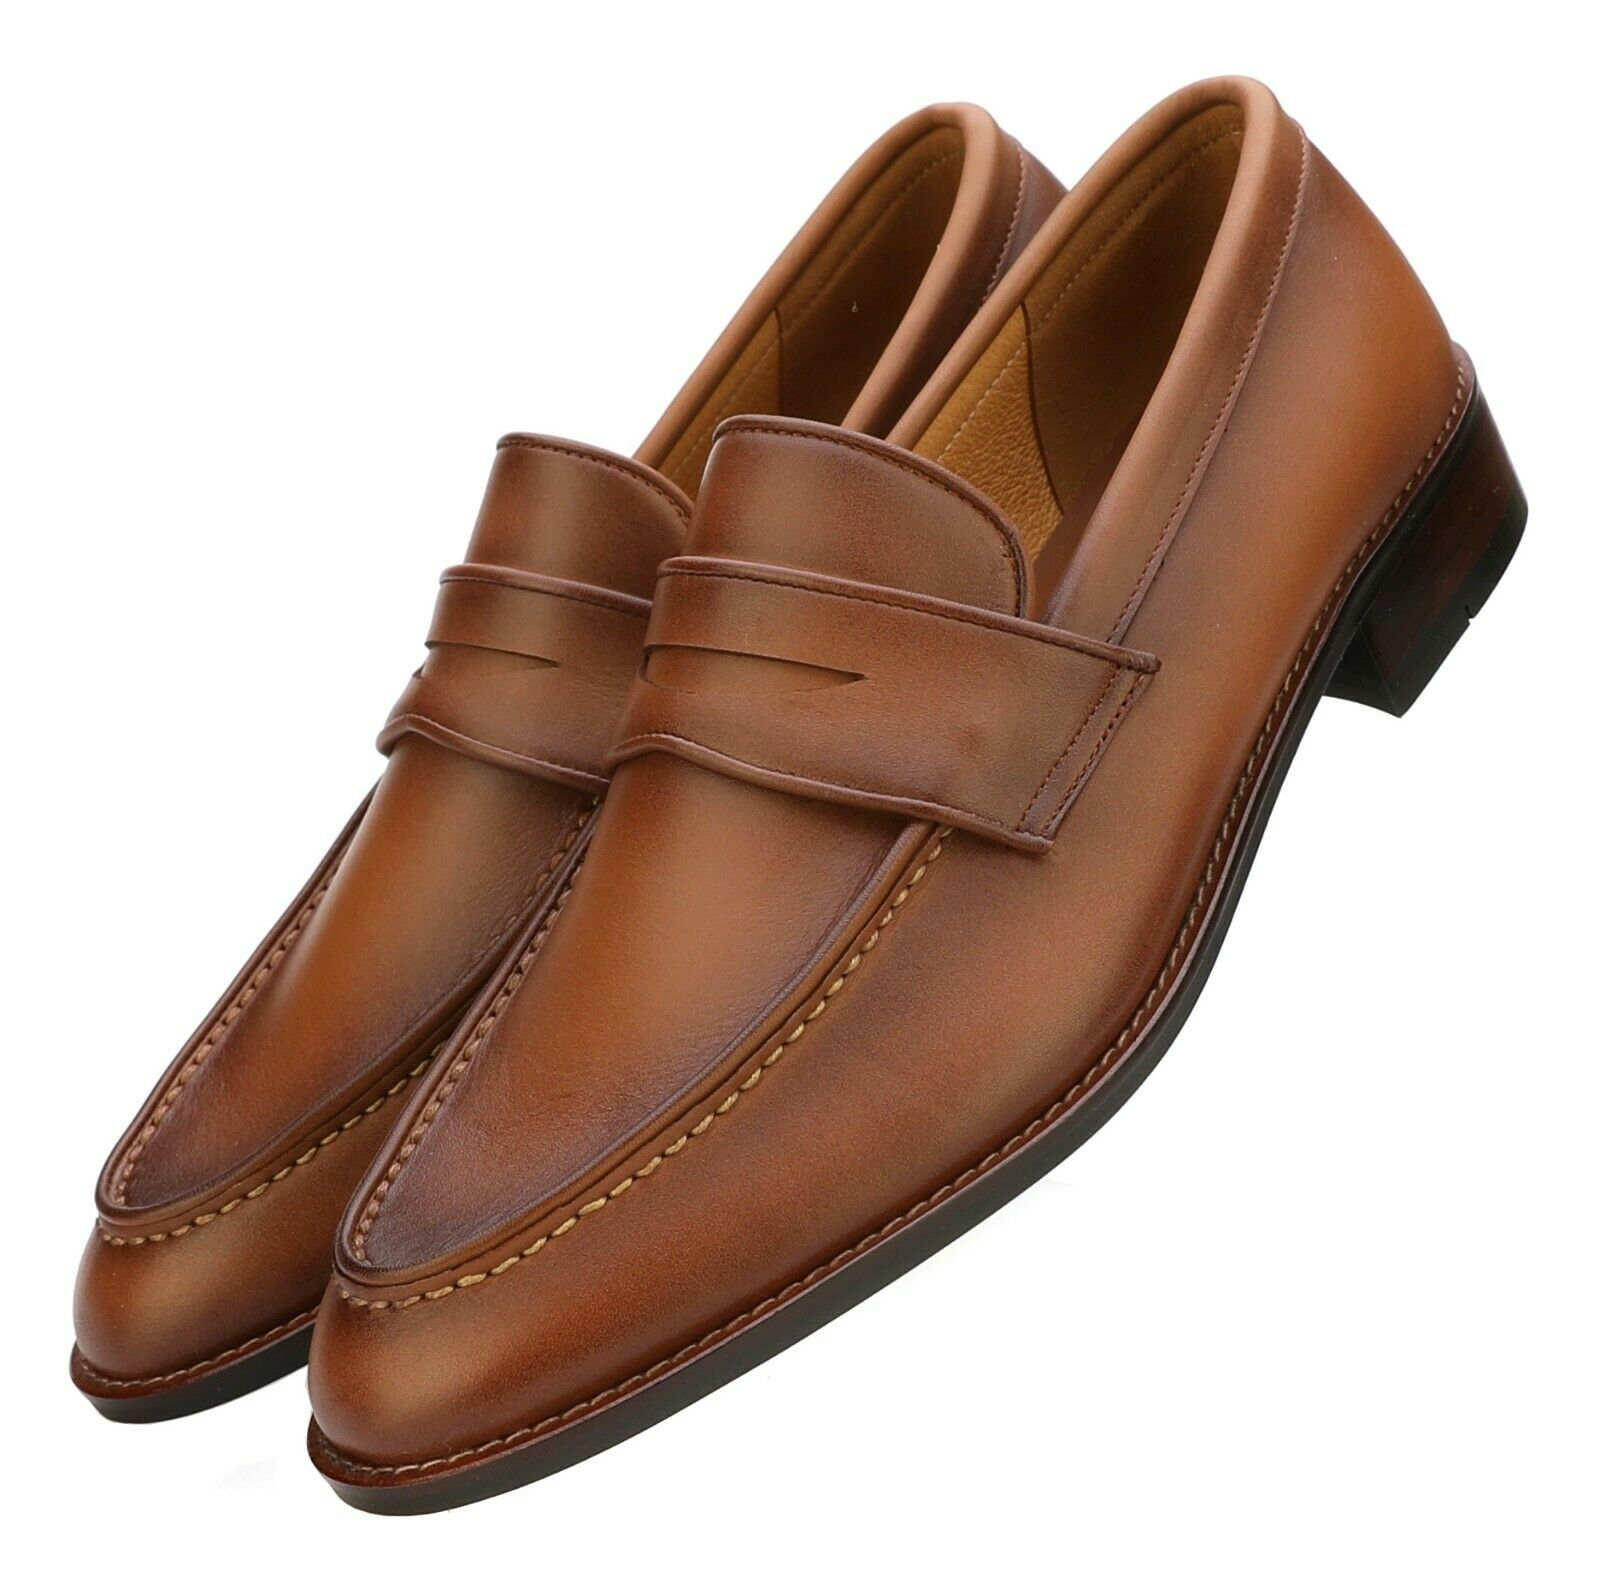 in linea Firenze Firenze Firenze Atelier Uomo Handmade Oil Marrone Full Grain Leather Penny Loafers  risparmia il 35% - 70% di sconto